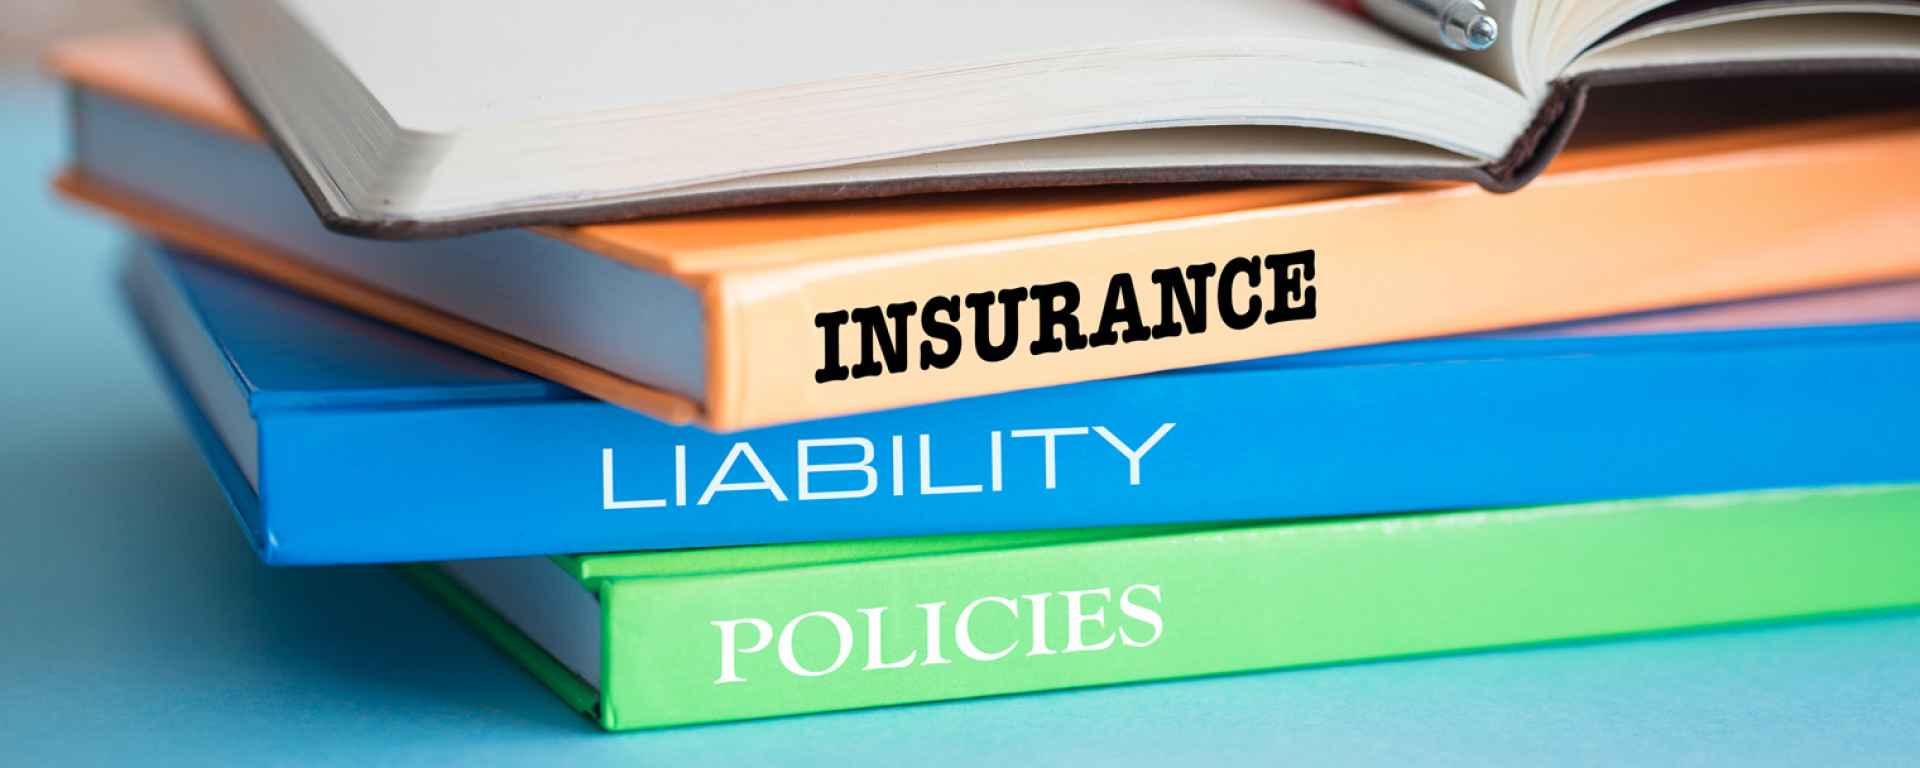 Insurance, Liability, Policies